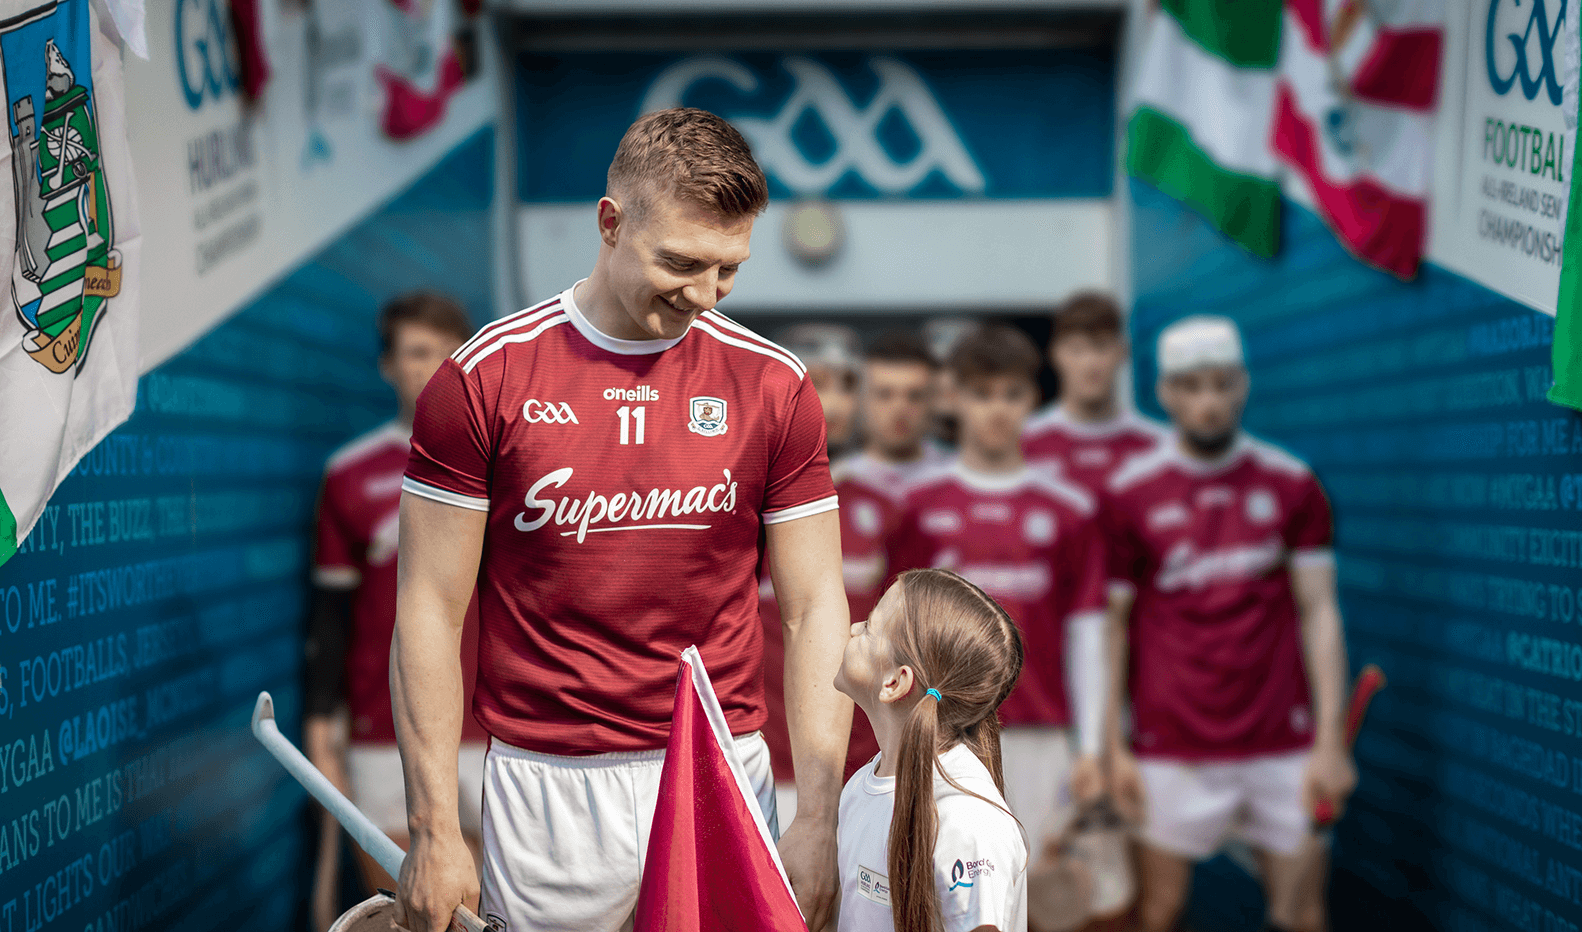 Joe Canning and flag bearer